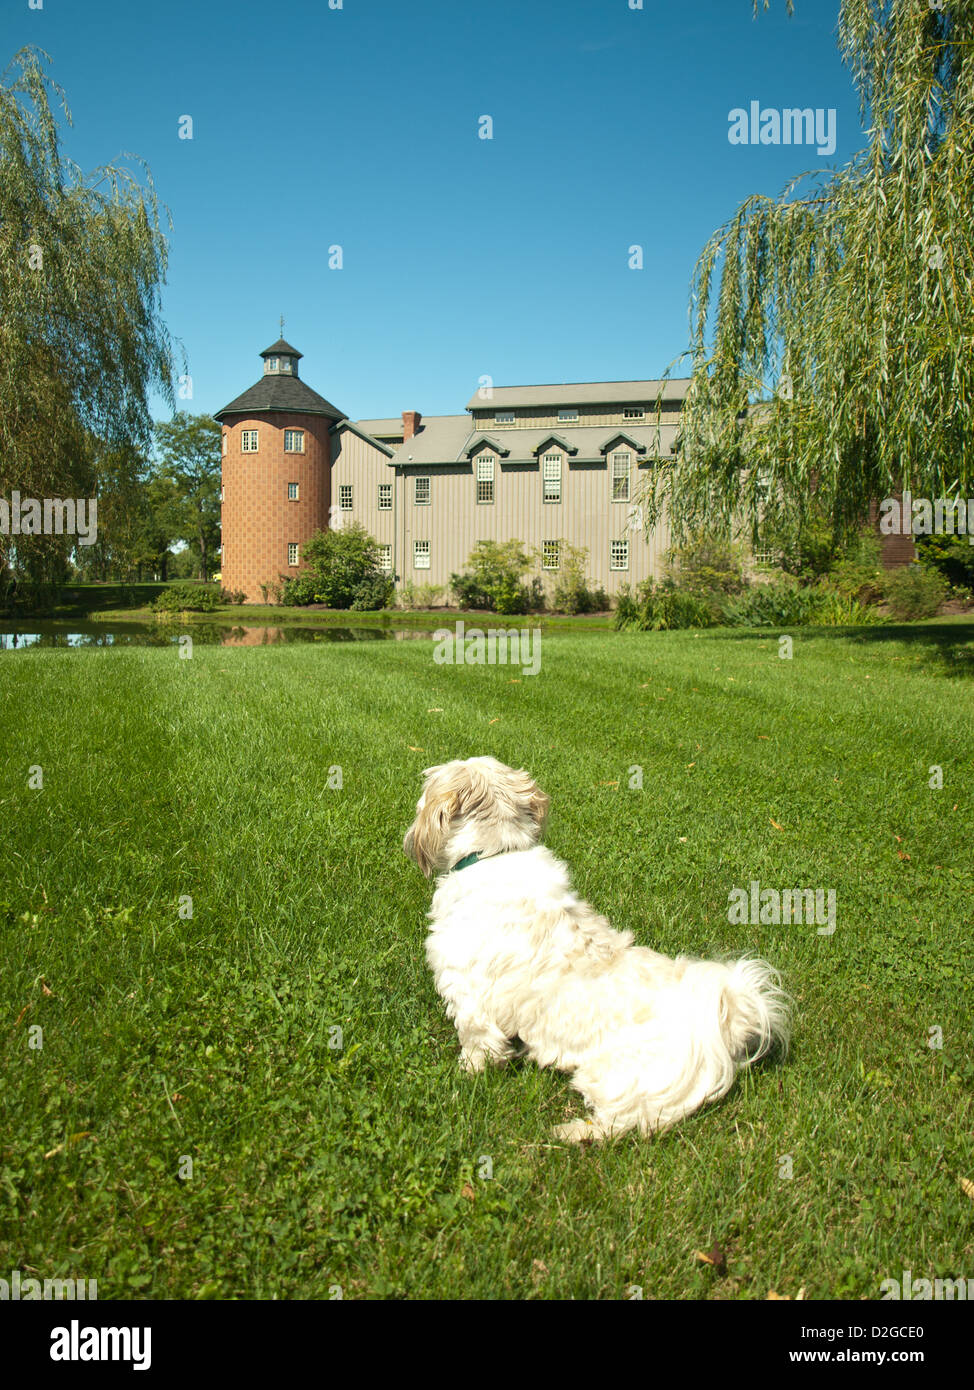 shih-tsu dog sitting on lawn looking at house with turret - Stock Image